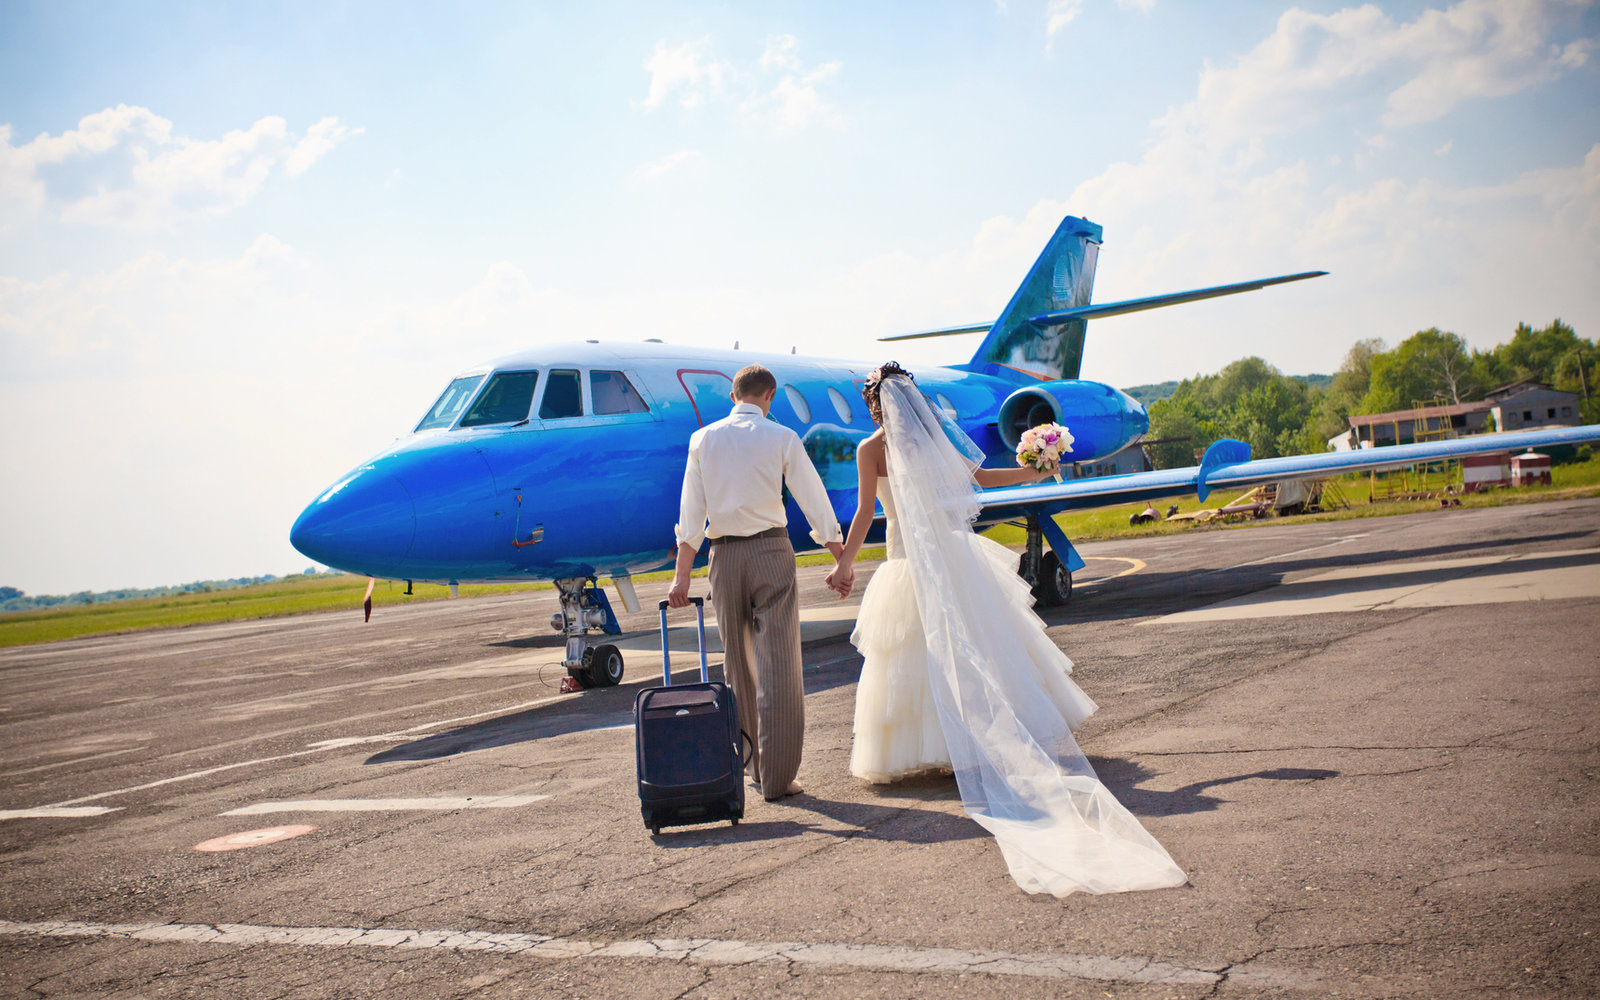 Man Proposes Wedding Mid-Flight